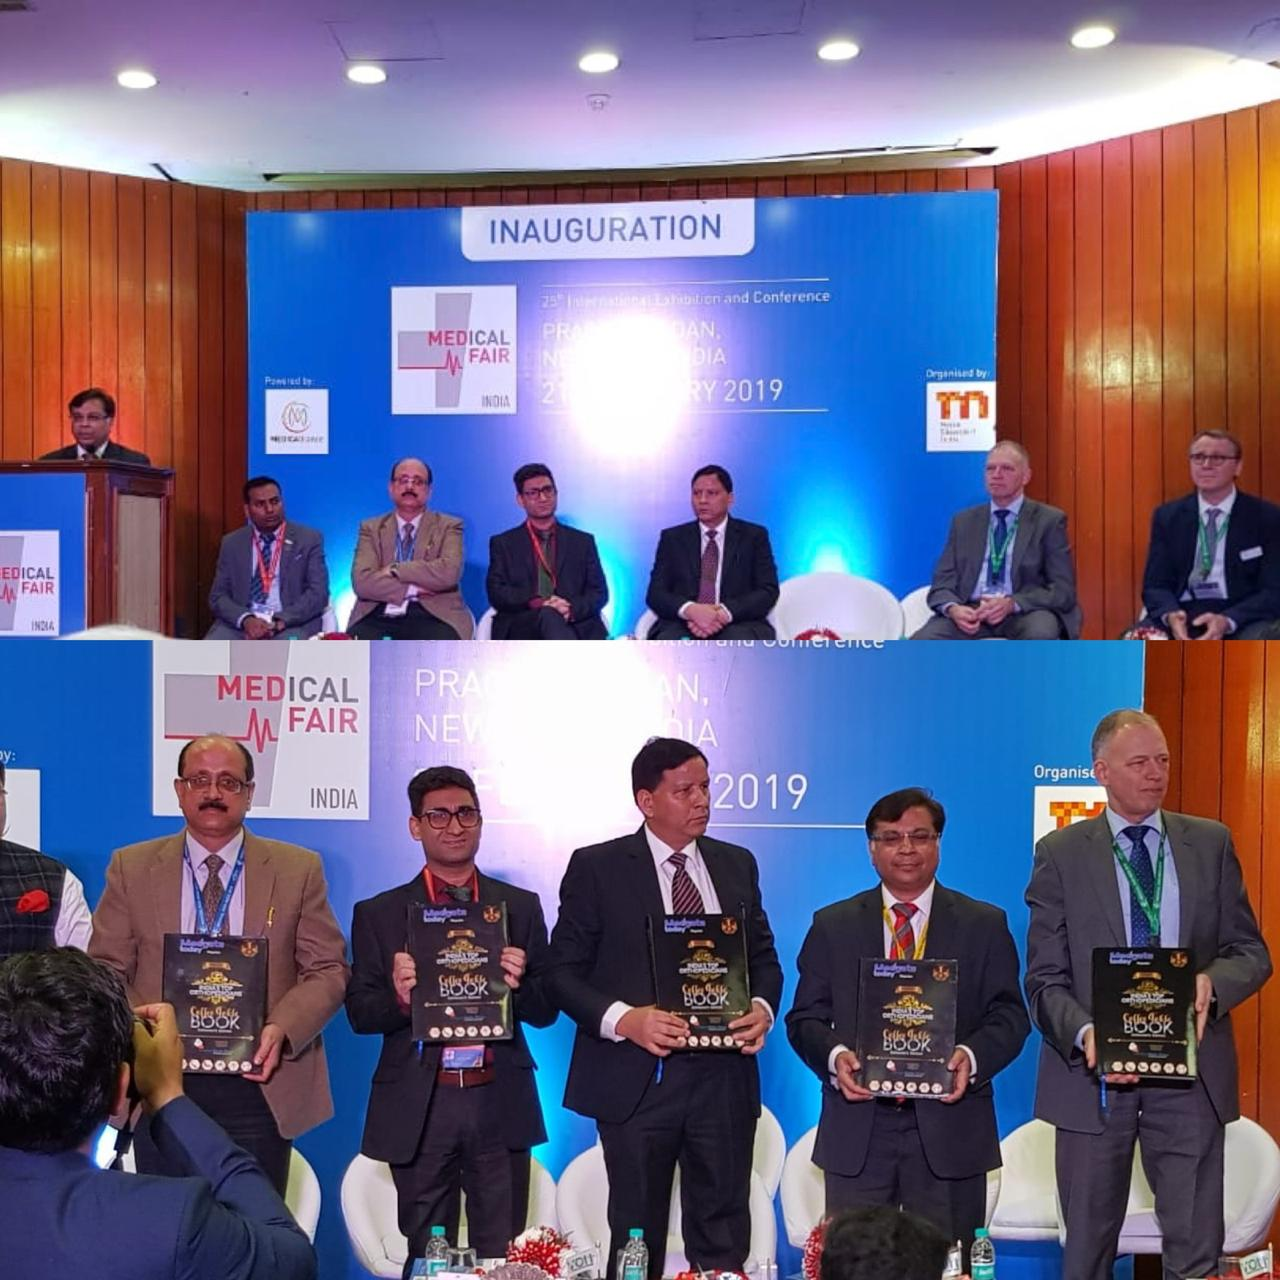 Medical Fair India 2019 starts with over 250 Indian Exhibitors